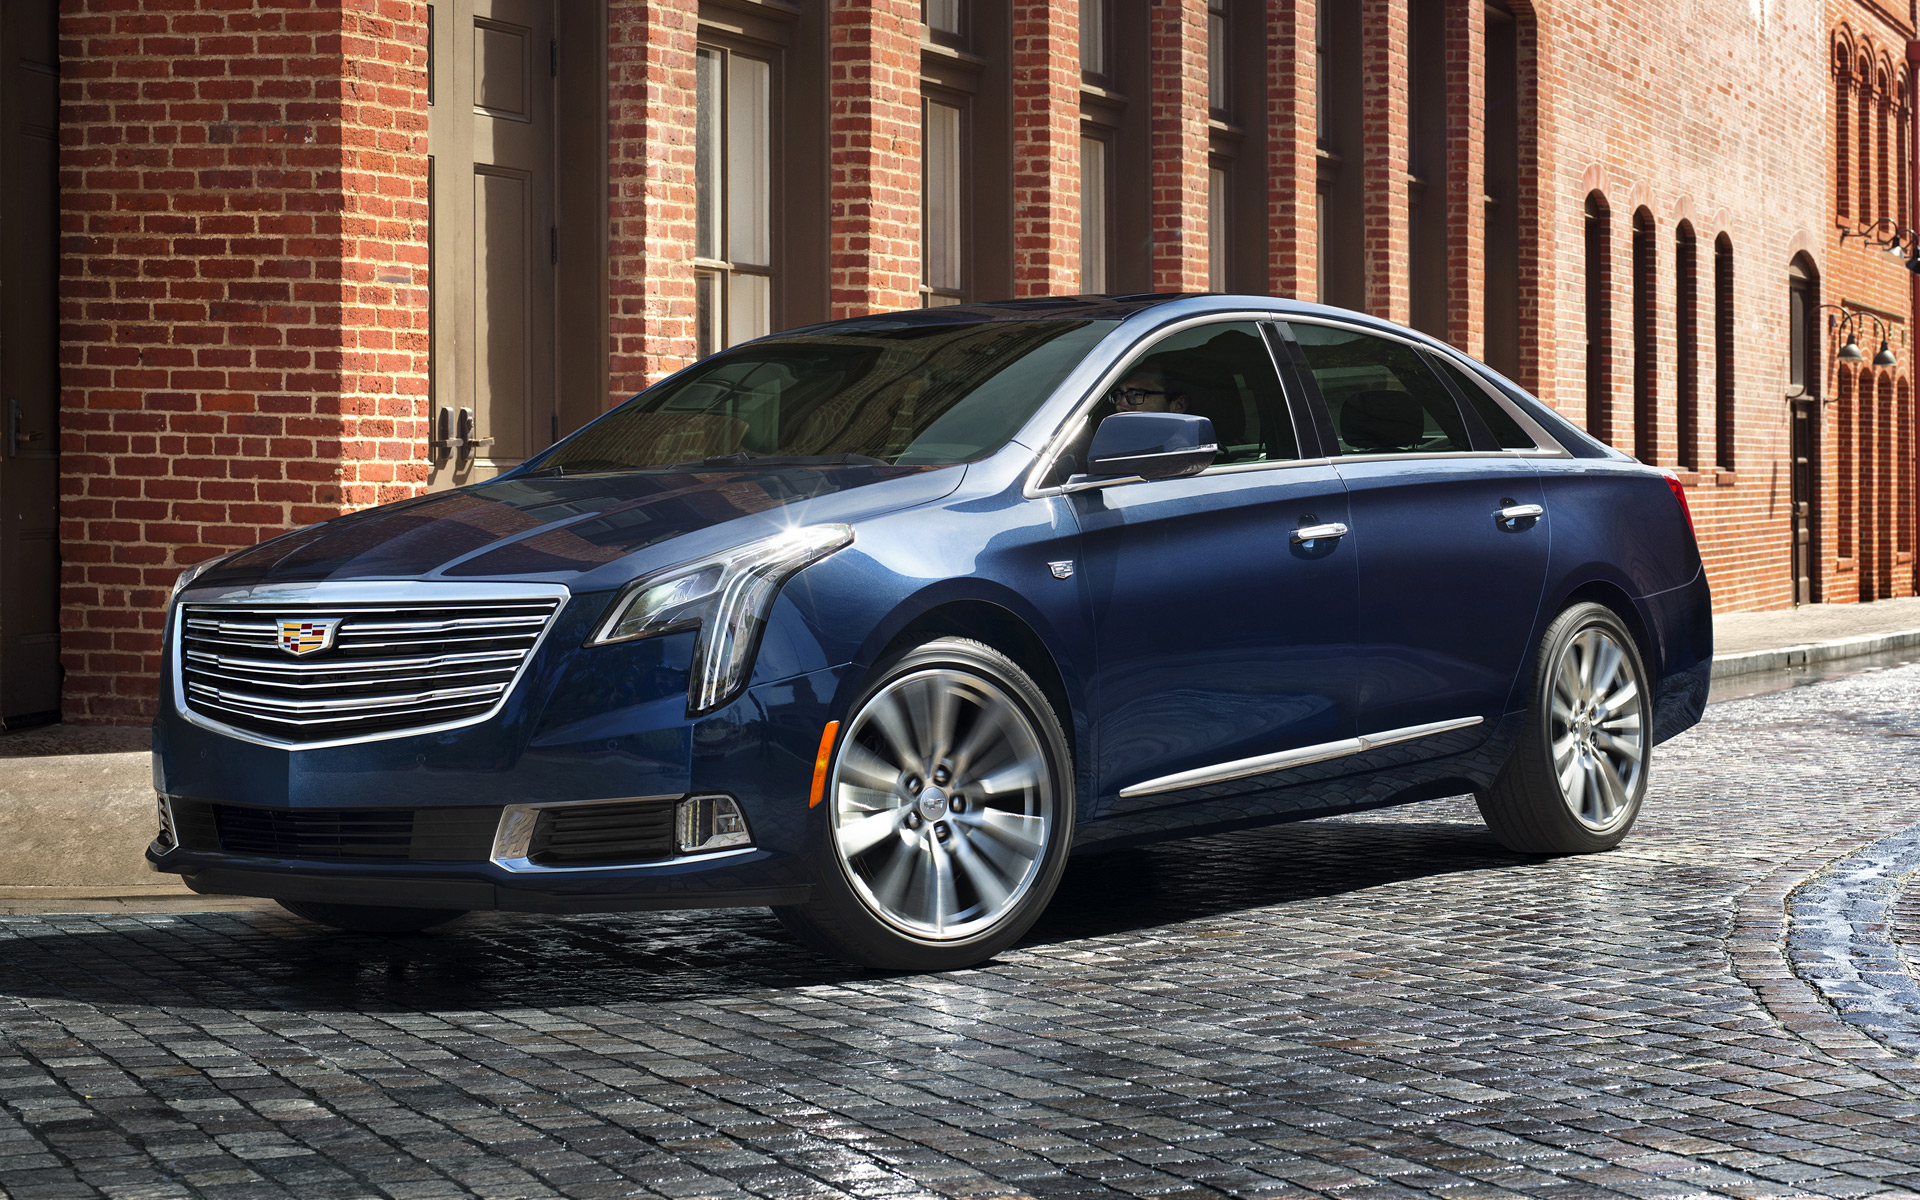 new and used cadillac xts prices photos reviews specs the car connection. Black Bedroom Furniture Sets. Home Design Ideas